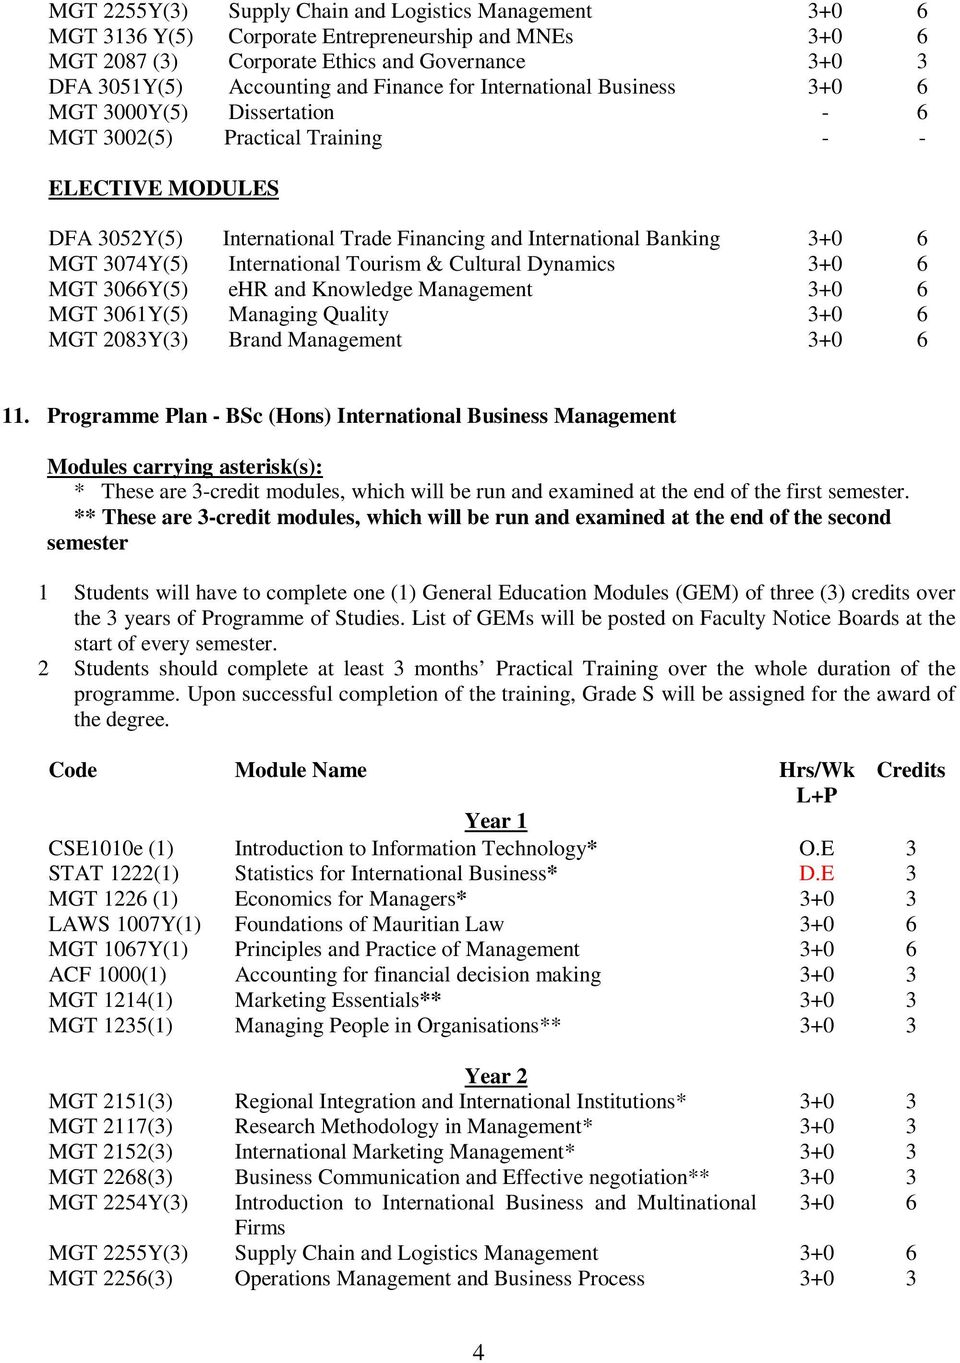 3074Y(5) International Tourism & Cultural Dynamics 3+0 6 MGT 3066Y(5) ehr and Knowledge Management 3+0 6 MGT 3061Y(5) Managing Quality 3+0 6 MGT 2083Y(3) Brand Management 3+0 6 11.